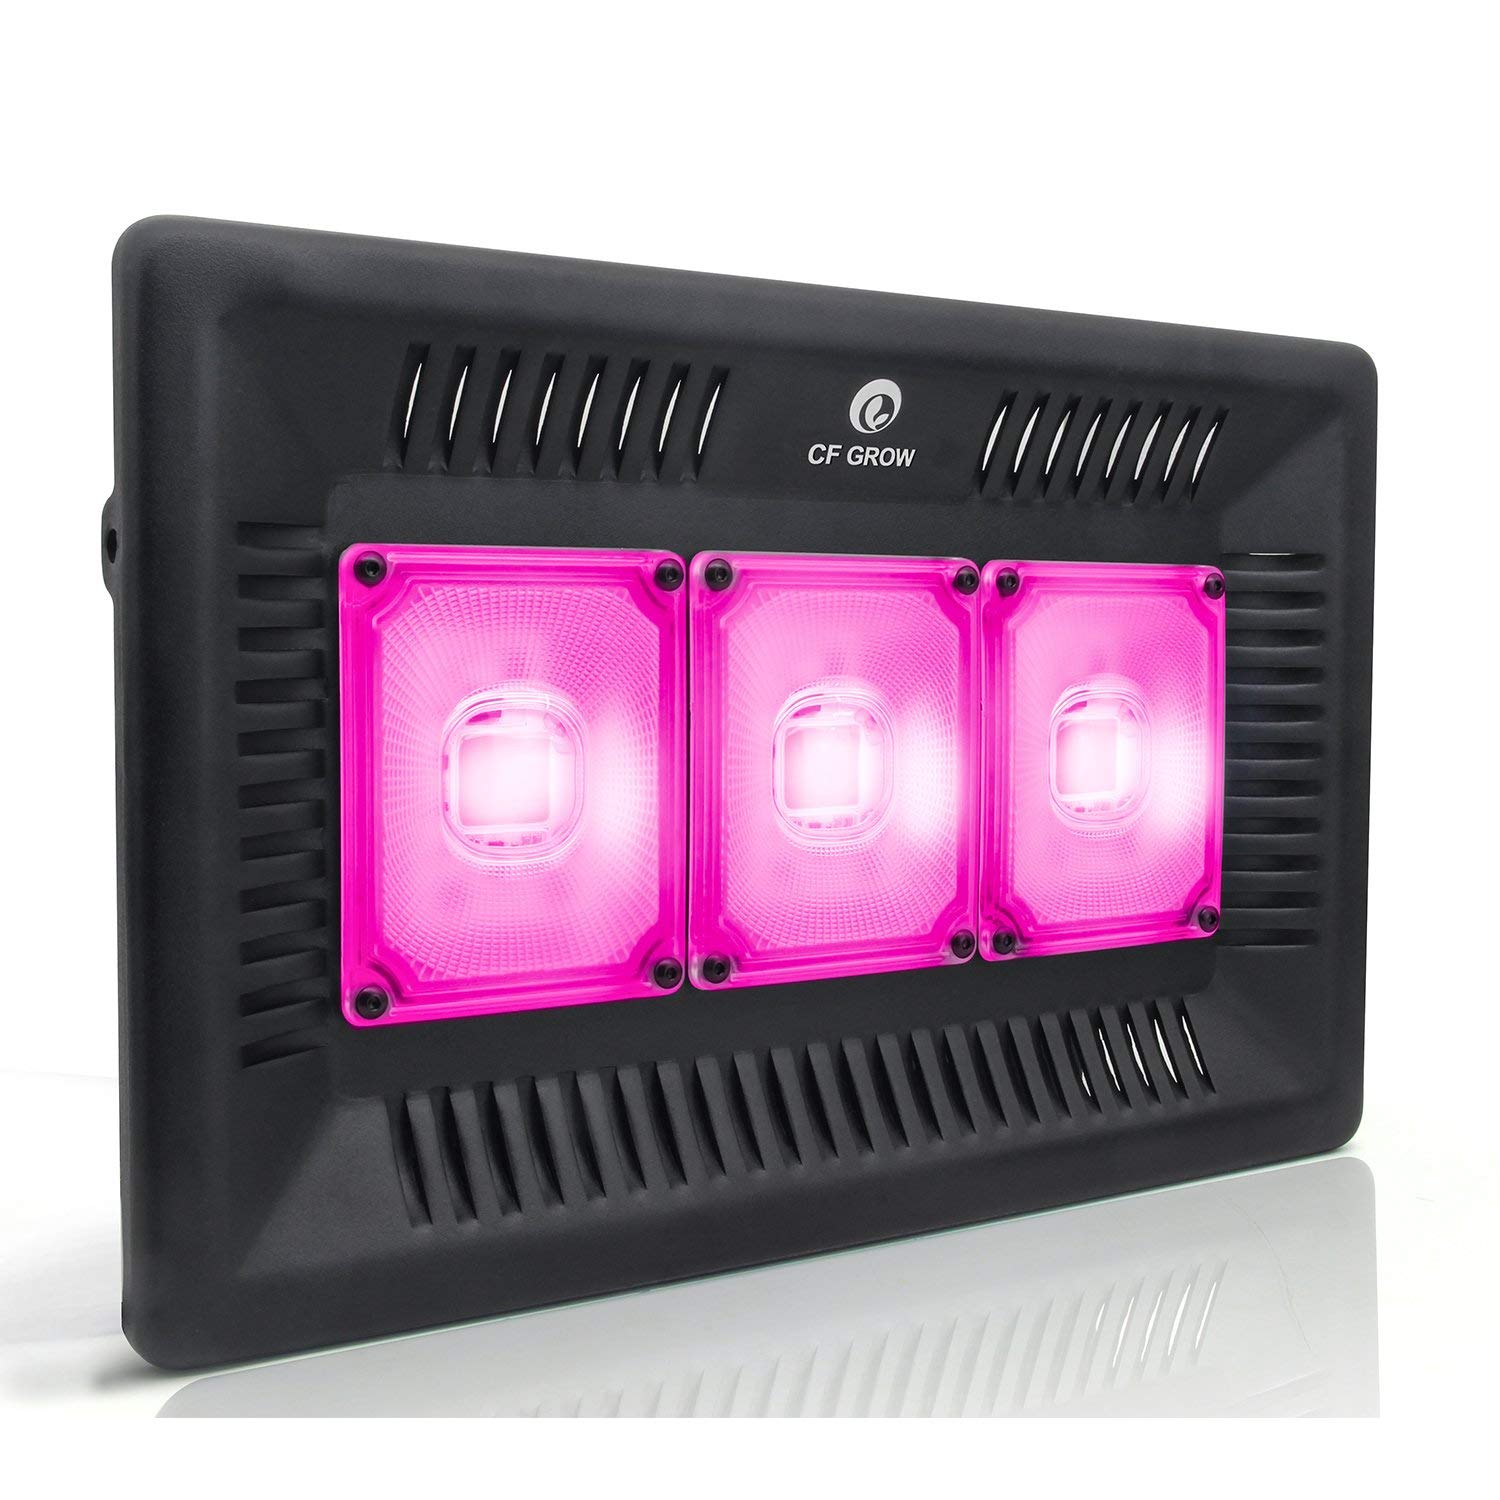 Waterproof 300W Led Grow Light Full Spectrum, New Technology Cob Led Grow Light, Natural Heat Dissipation Without Noise, Suitable For Plants All Growing Stage Indoor and Outdoor